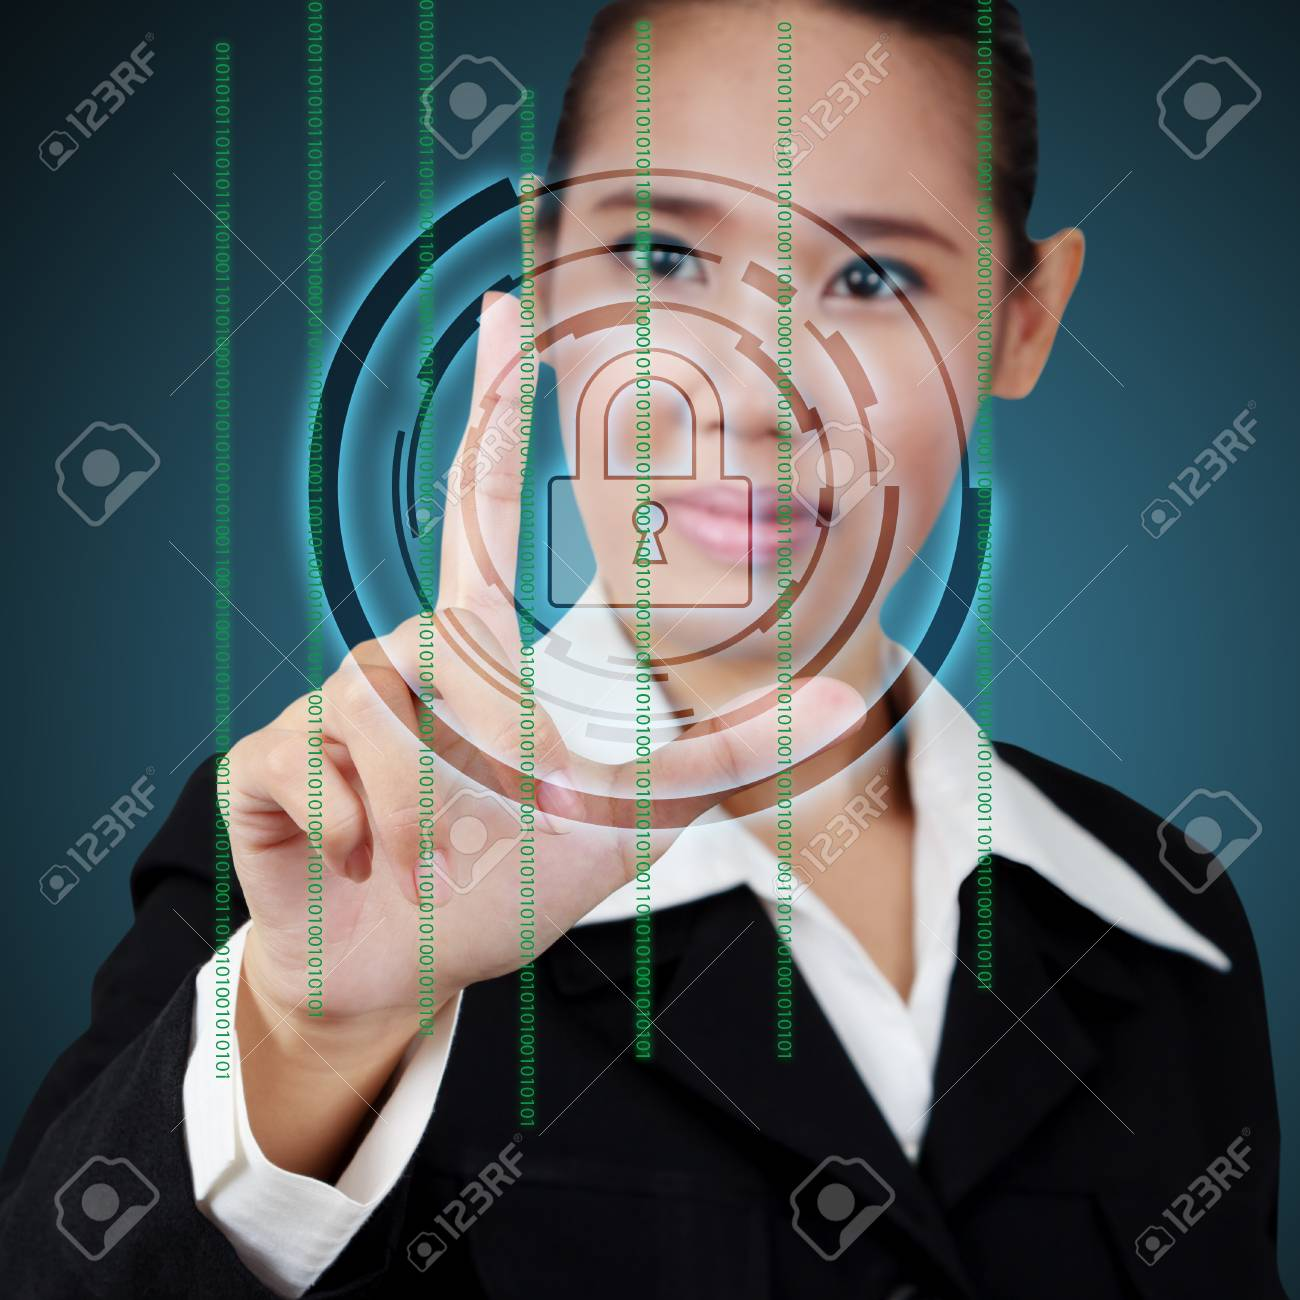 Touching a security key on virtual screen Stock Photo - 26321933